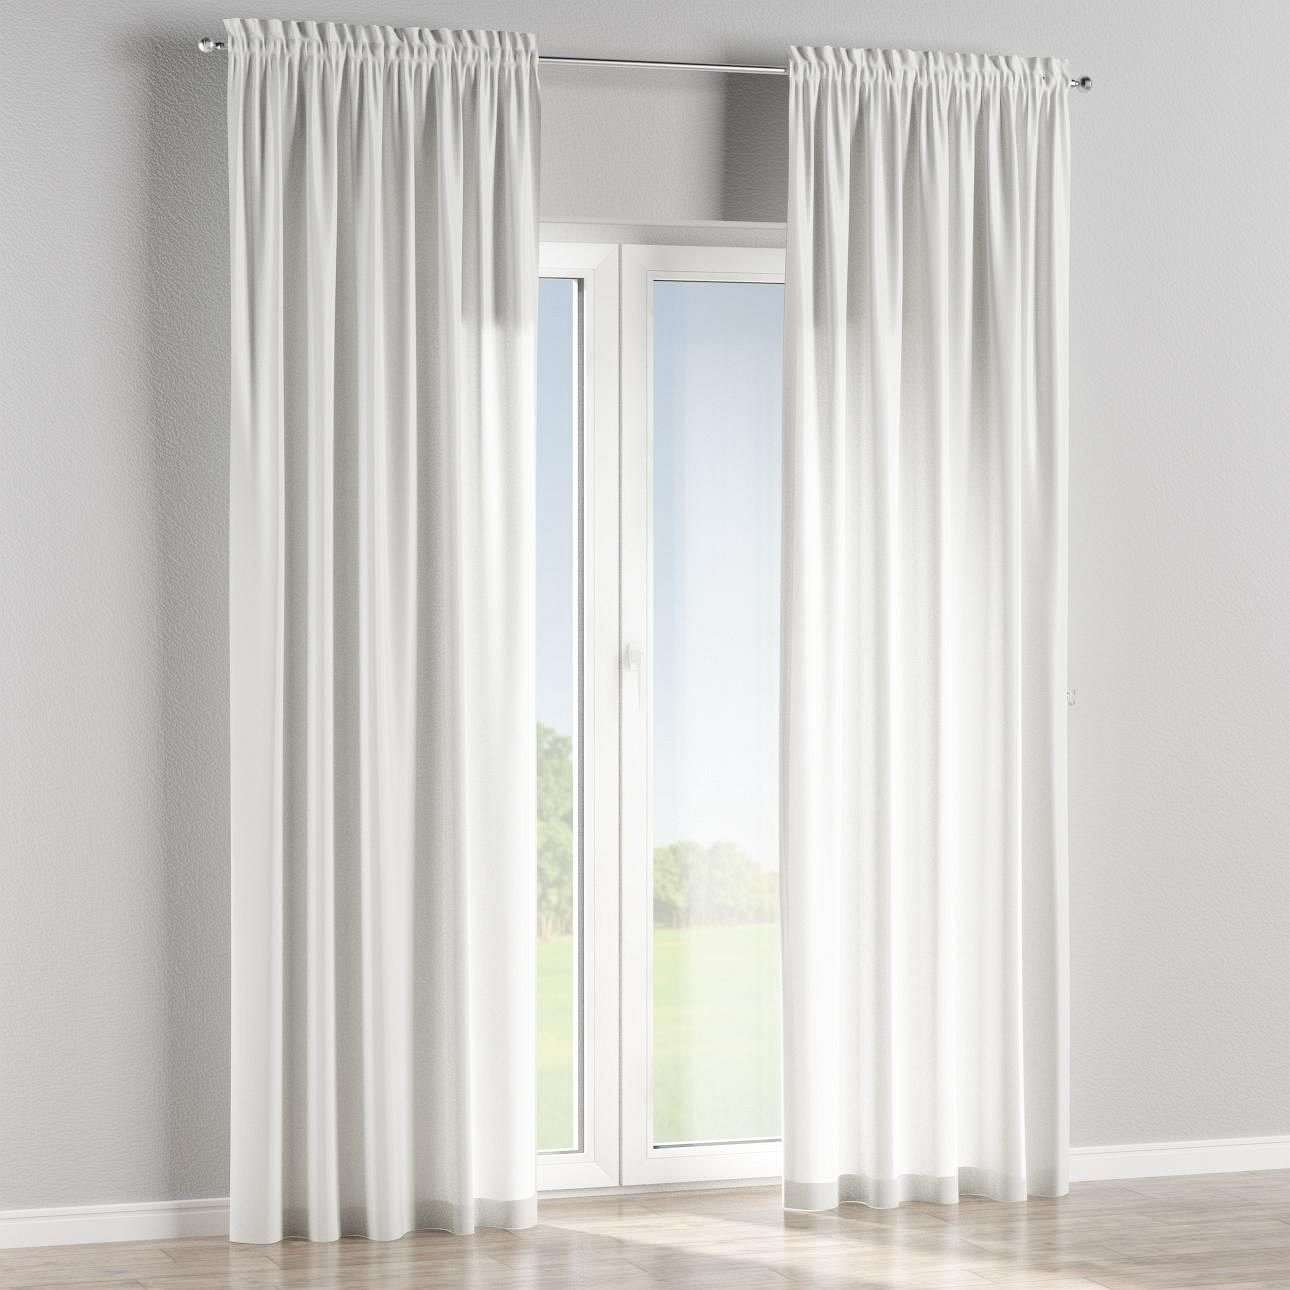 Slot and frill curtains in collection Cardiff, fabric: 136-21